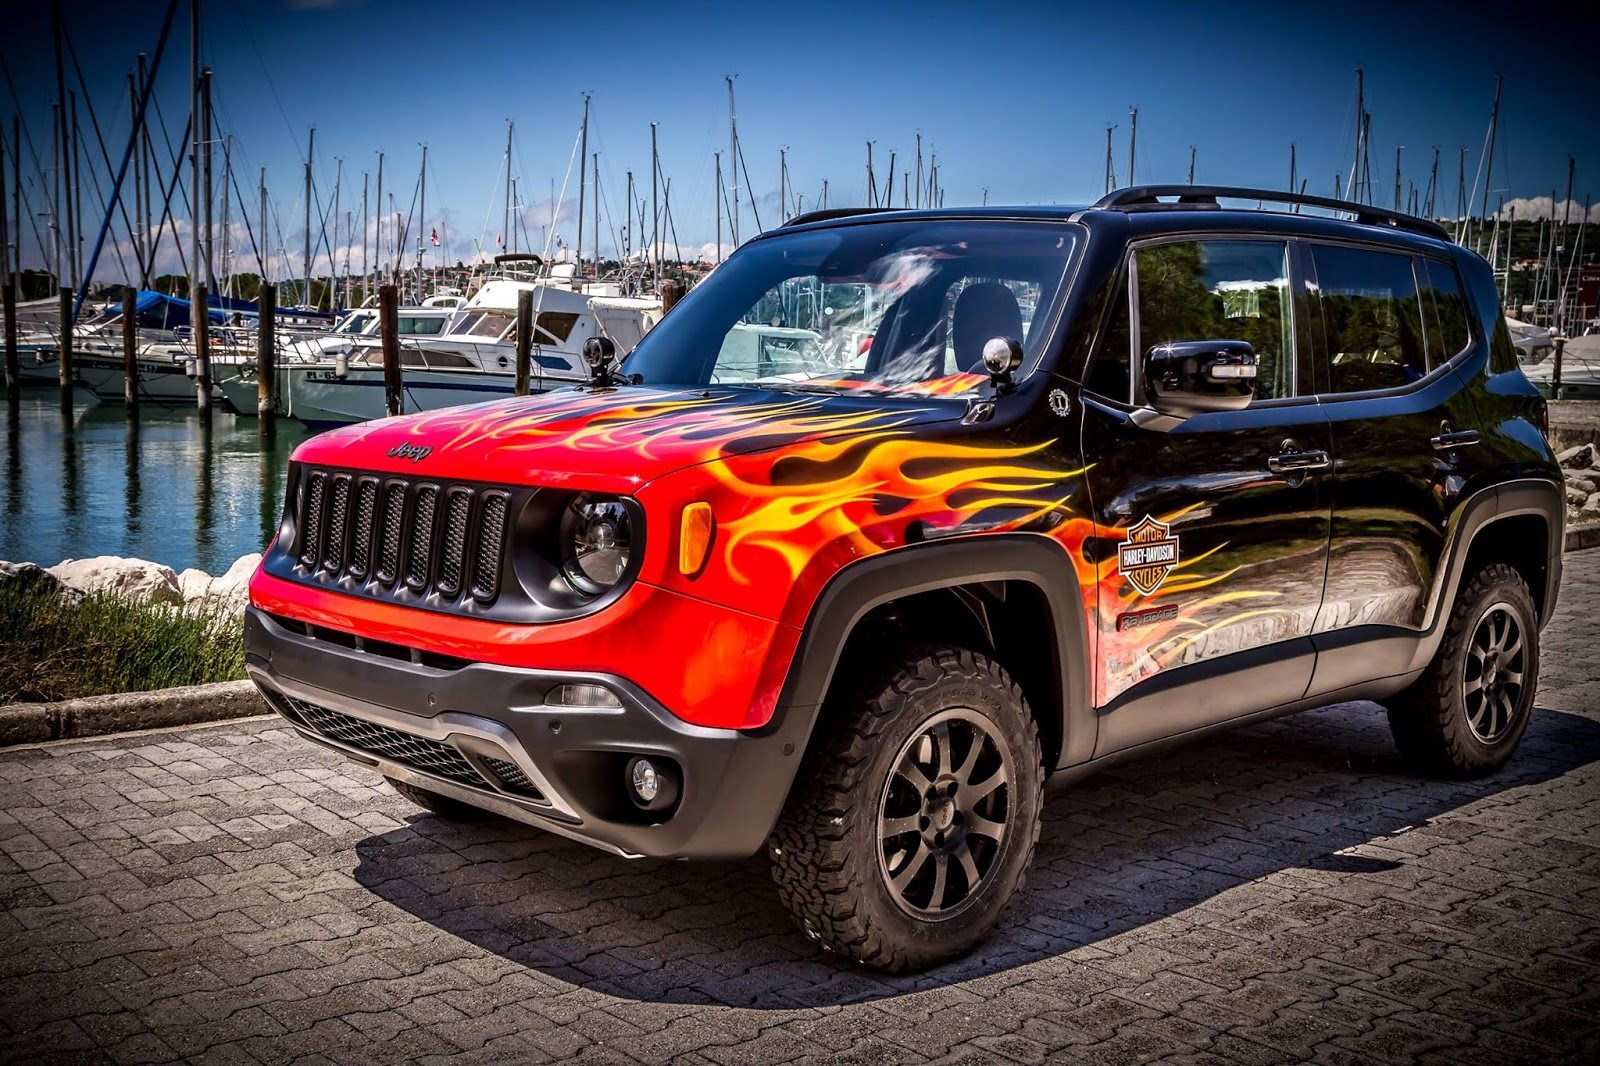 2016 Jeep Wrangler Diesel >> Jeep Renegade Crash Tested by the Euro NCAP, Awarded the Coveted 5-Star Rating - autoevolution